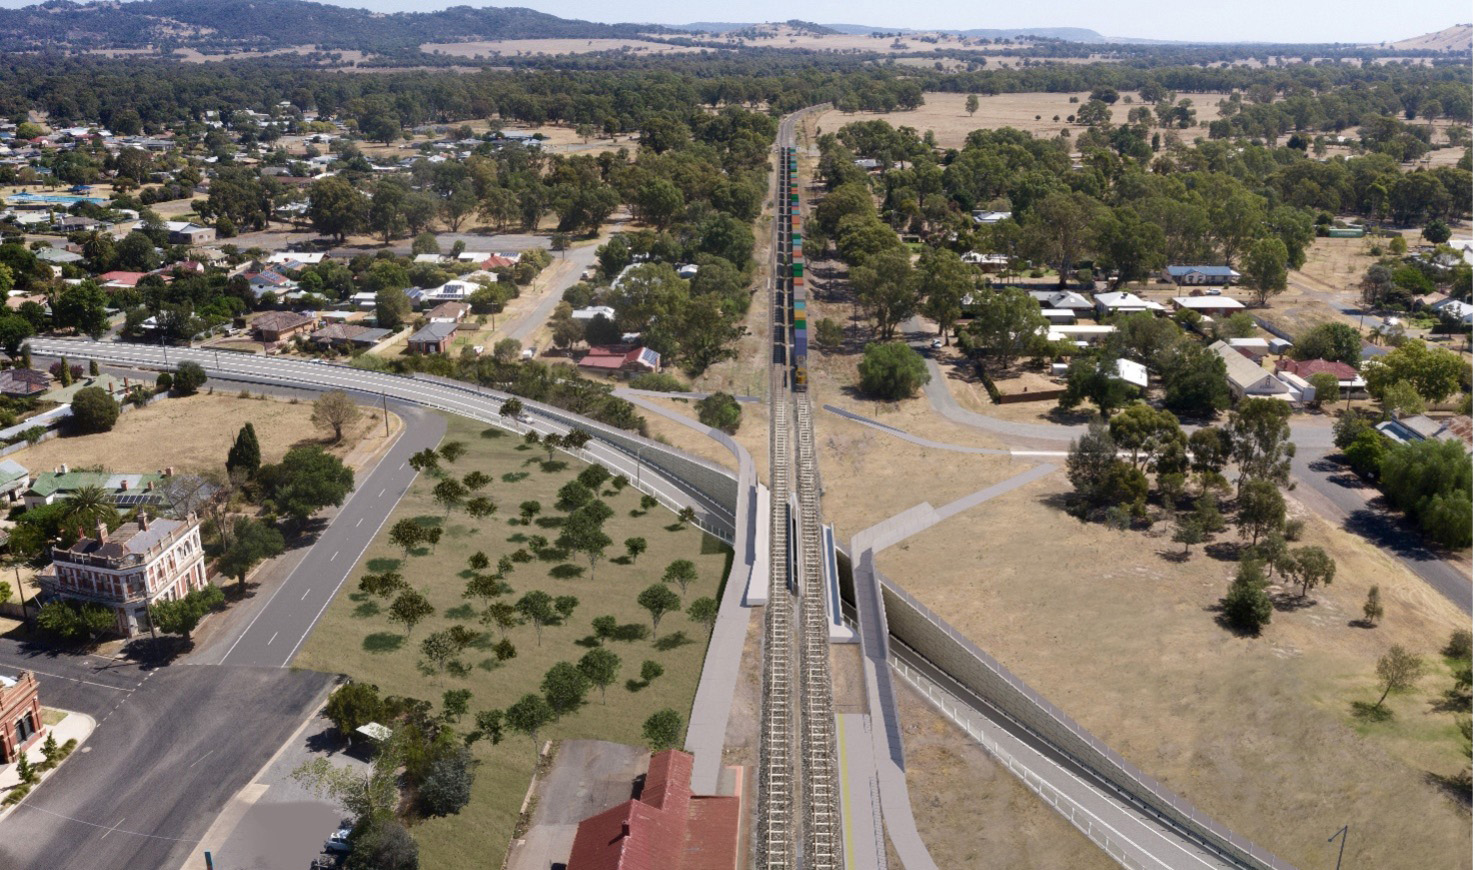 Visualisations of what a heavy vehicle underpass could look like at Euroa